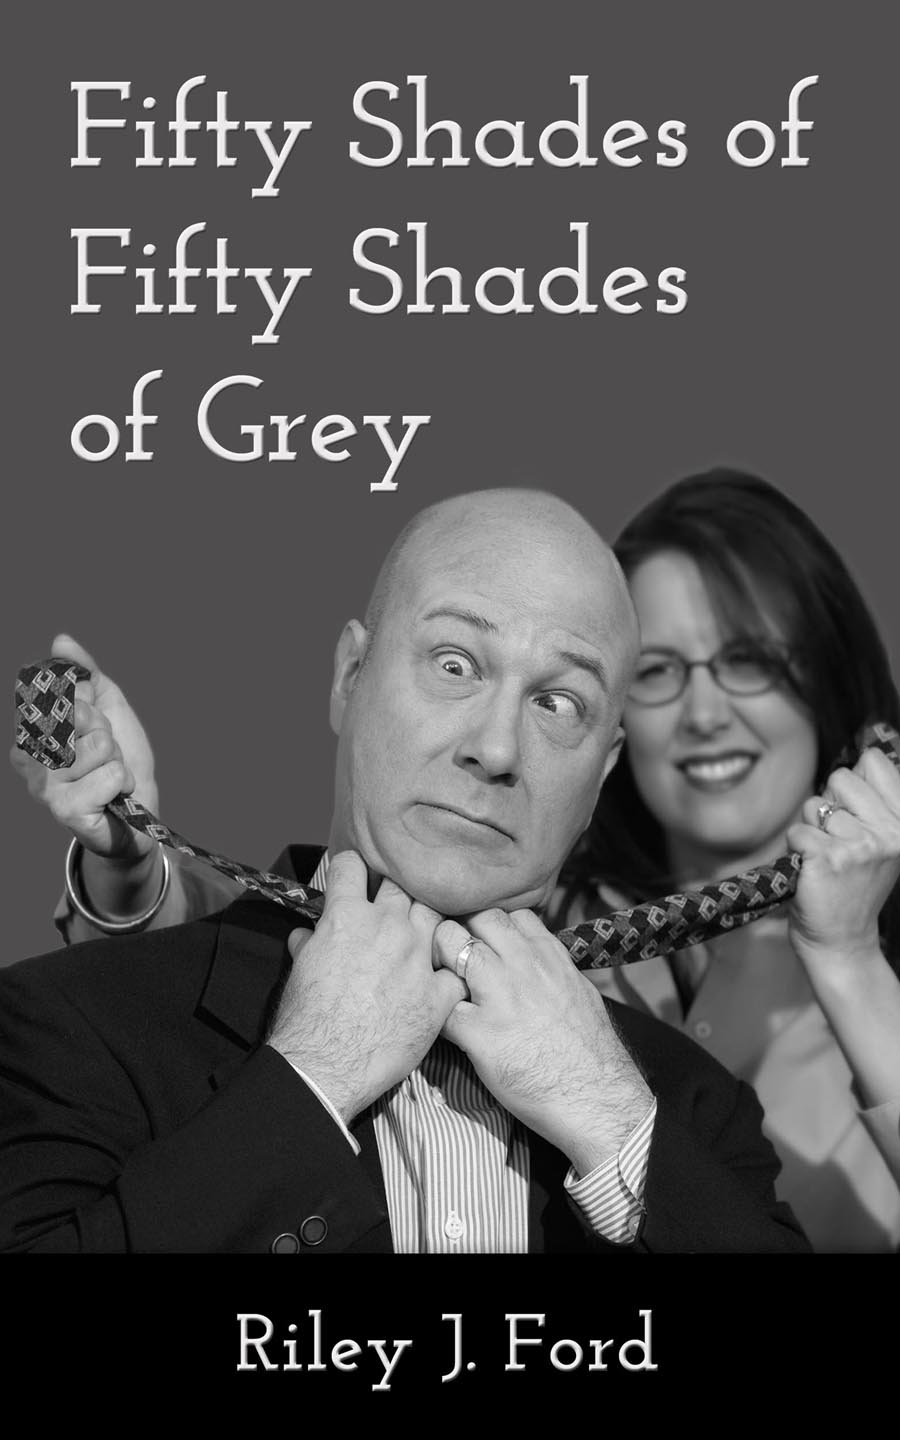 Riley J. Ford - Fifty Shades of Fifty Shades of Grey (A Romantic Comedy /Erotic Romance Satire)